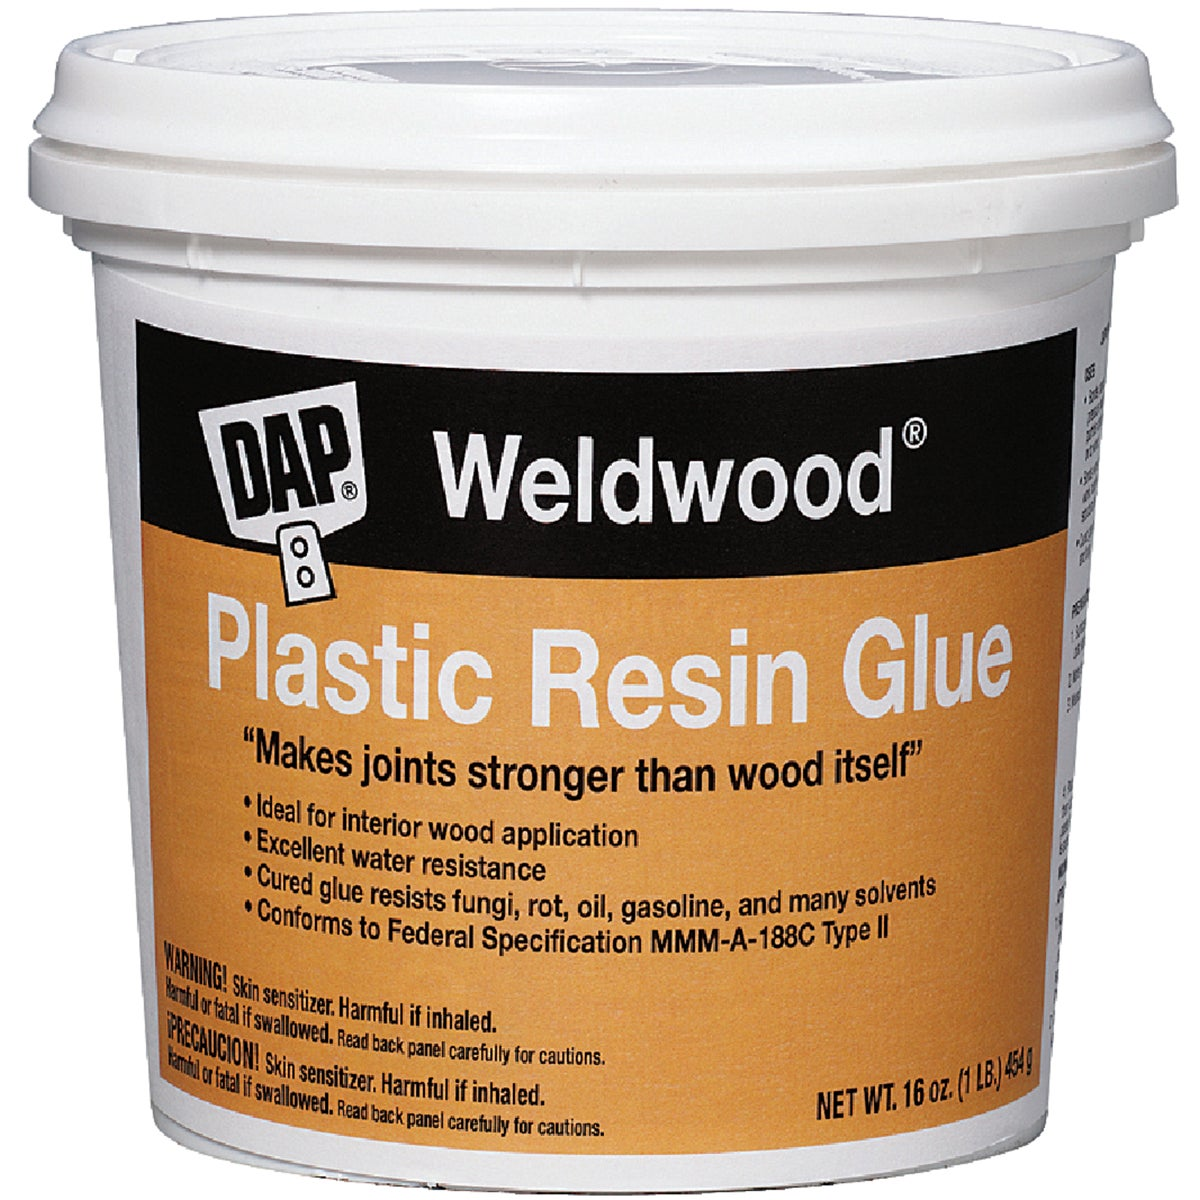 1LB PLASTIC RESIN GLUE